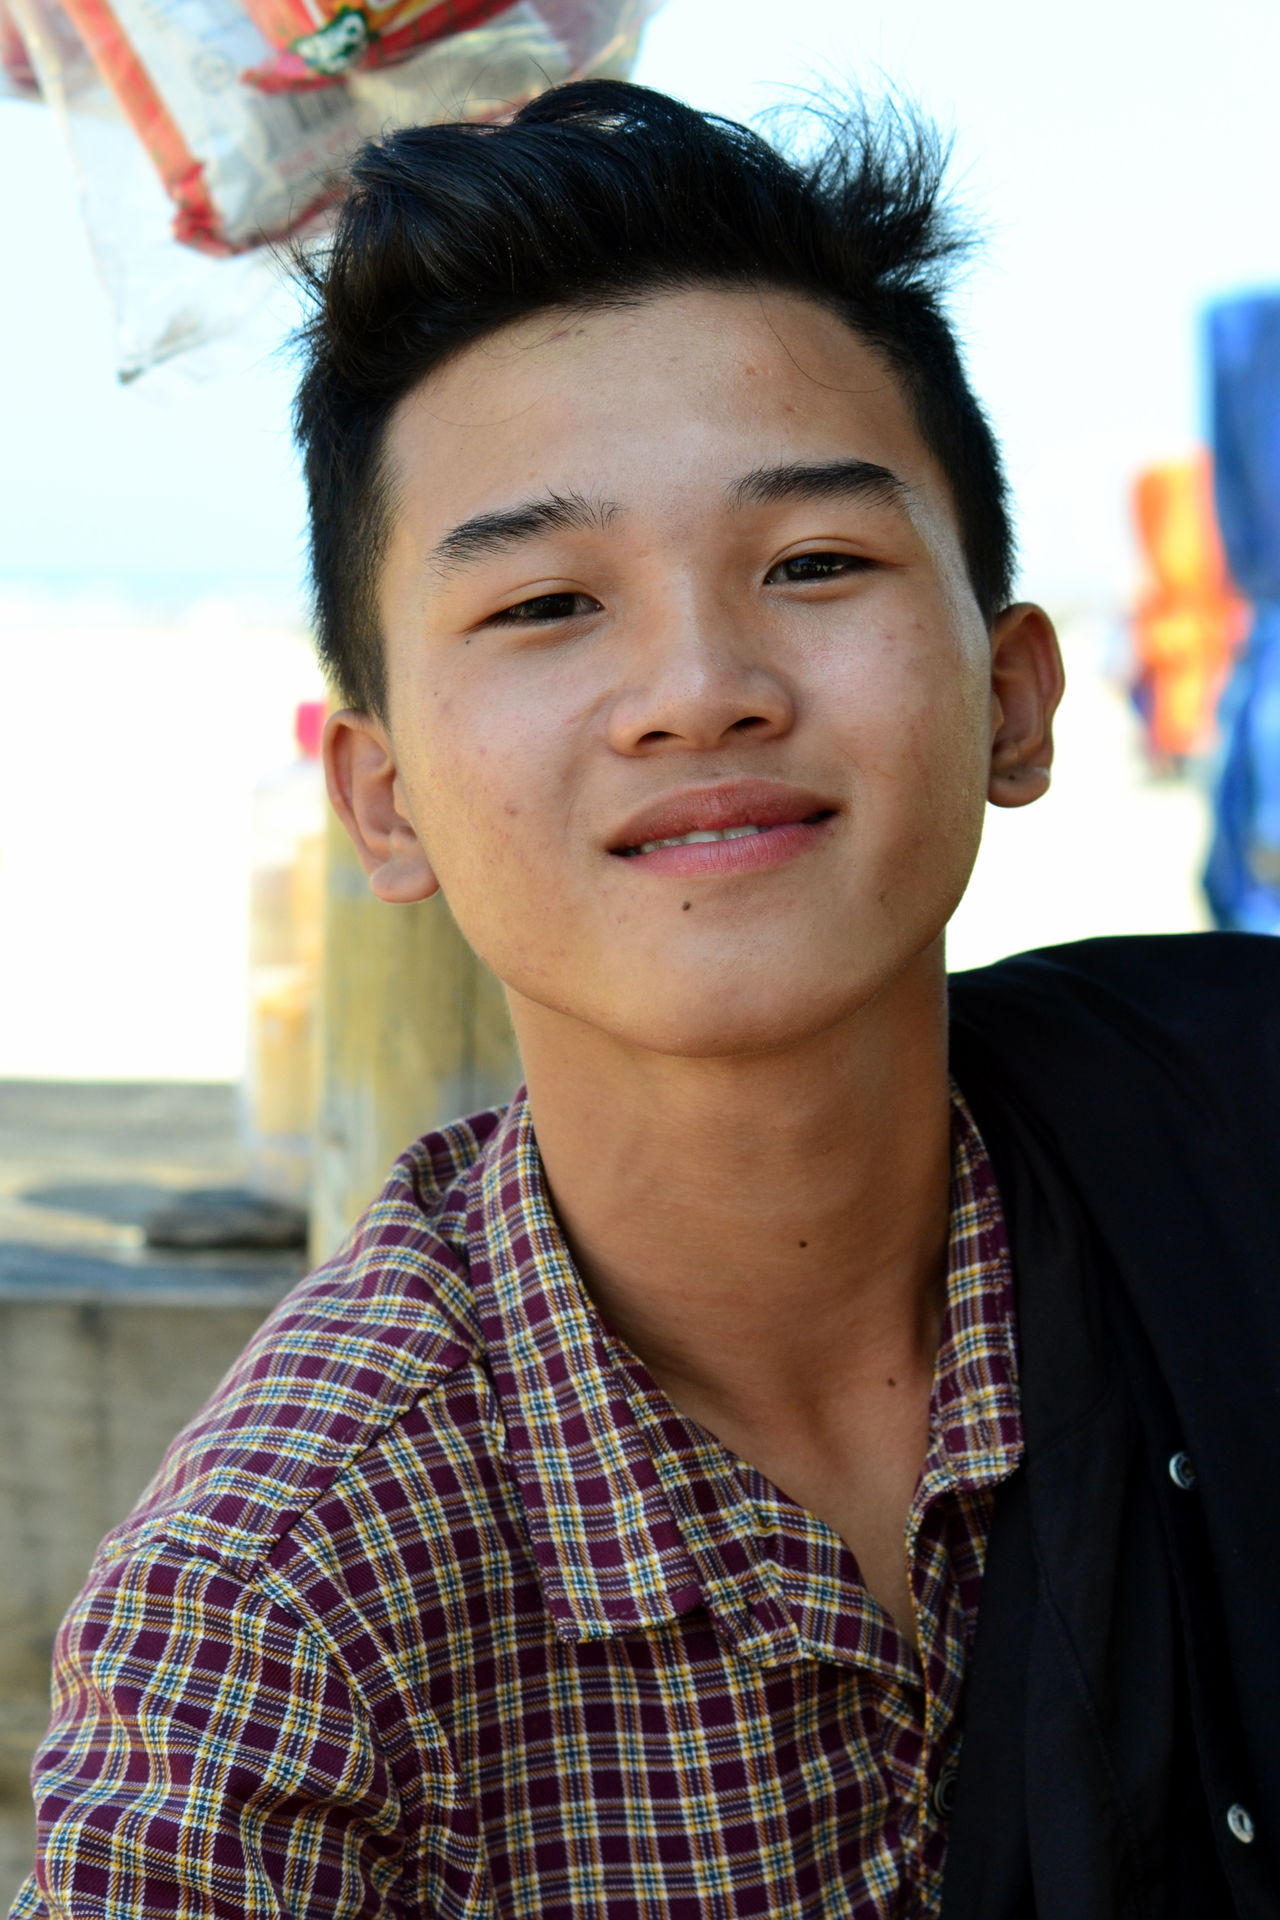 Close-up Day Front View One Person Outdoors People Portrait Real People Teen Teenage Boy Teenage Boys Teenager Young Adult